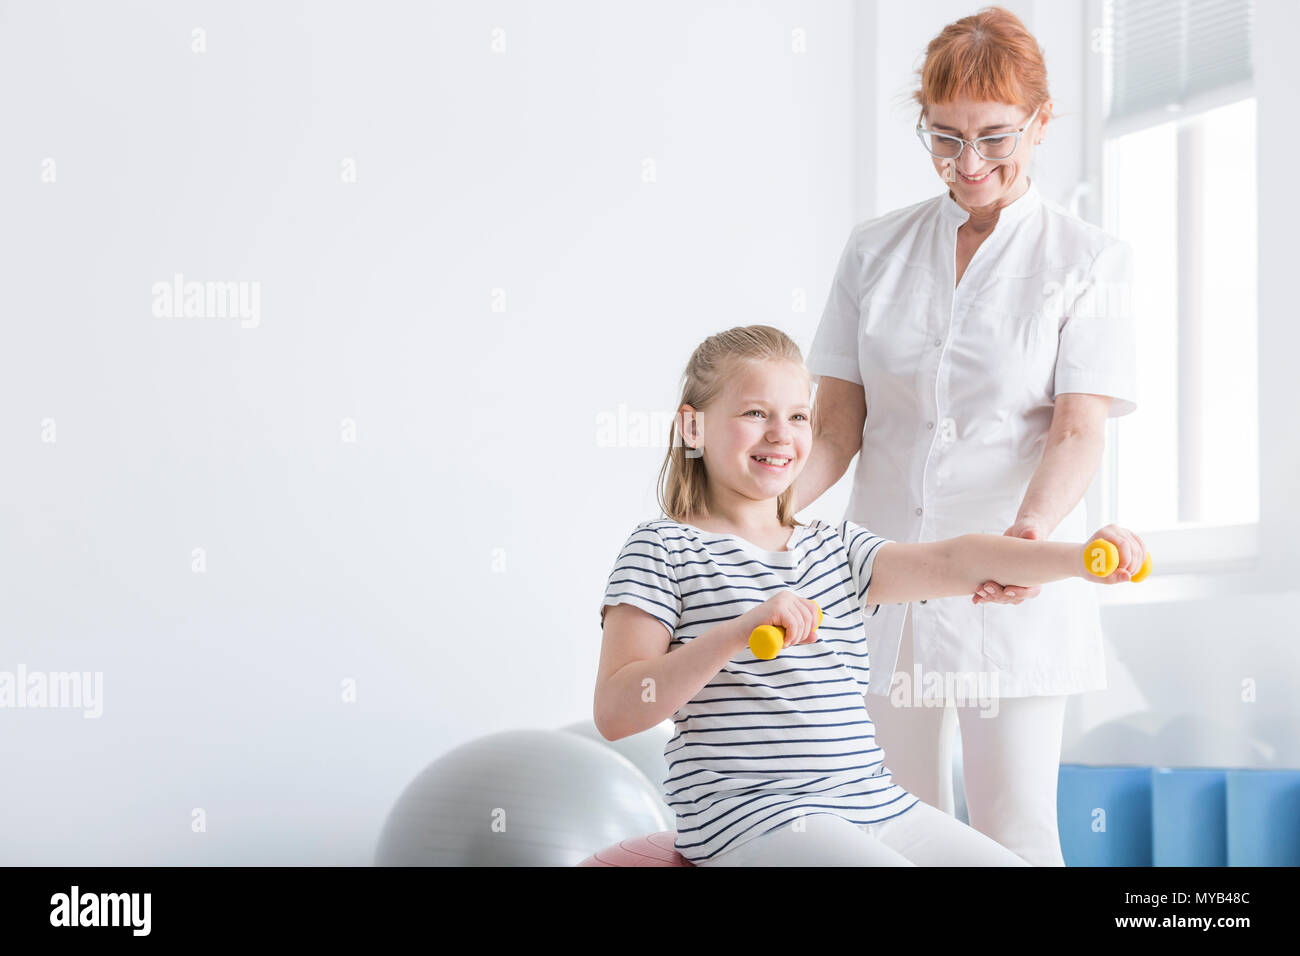 Photo of kid exercising with dumbbells with copy space - Stock Image